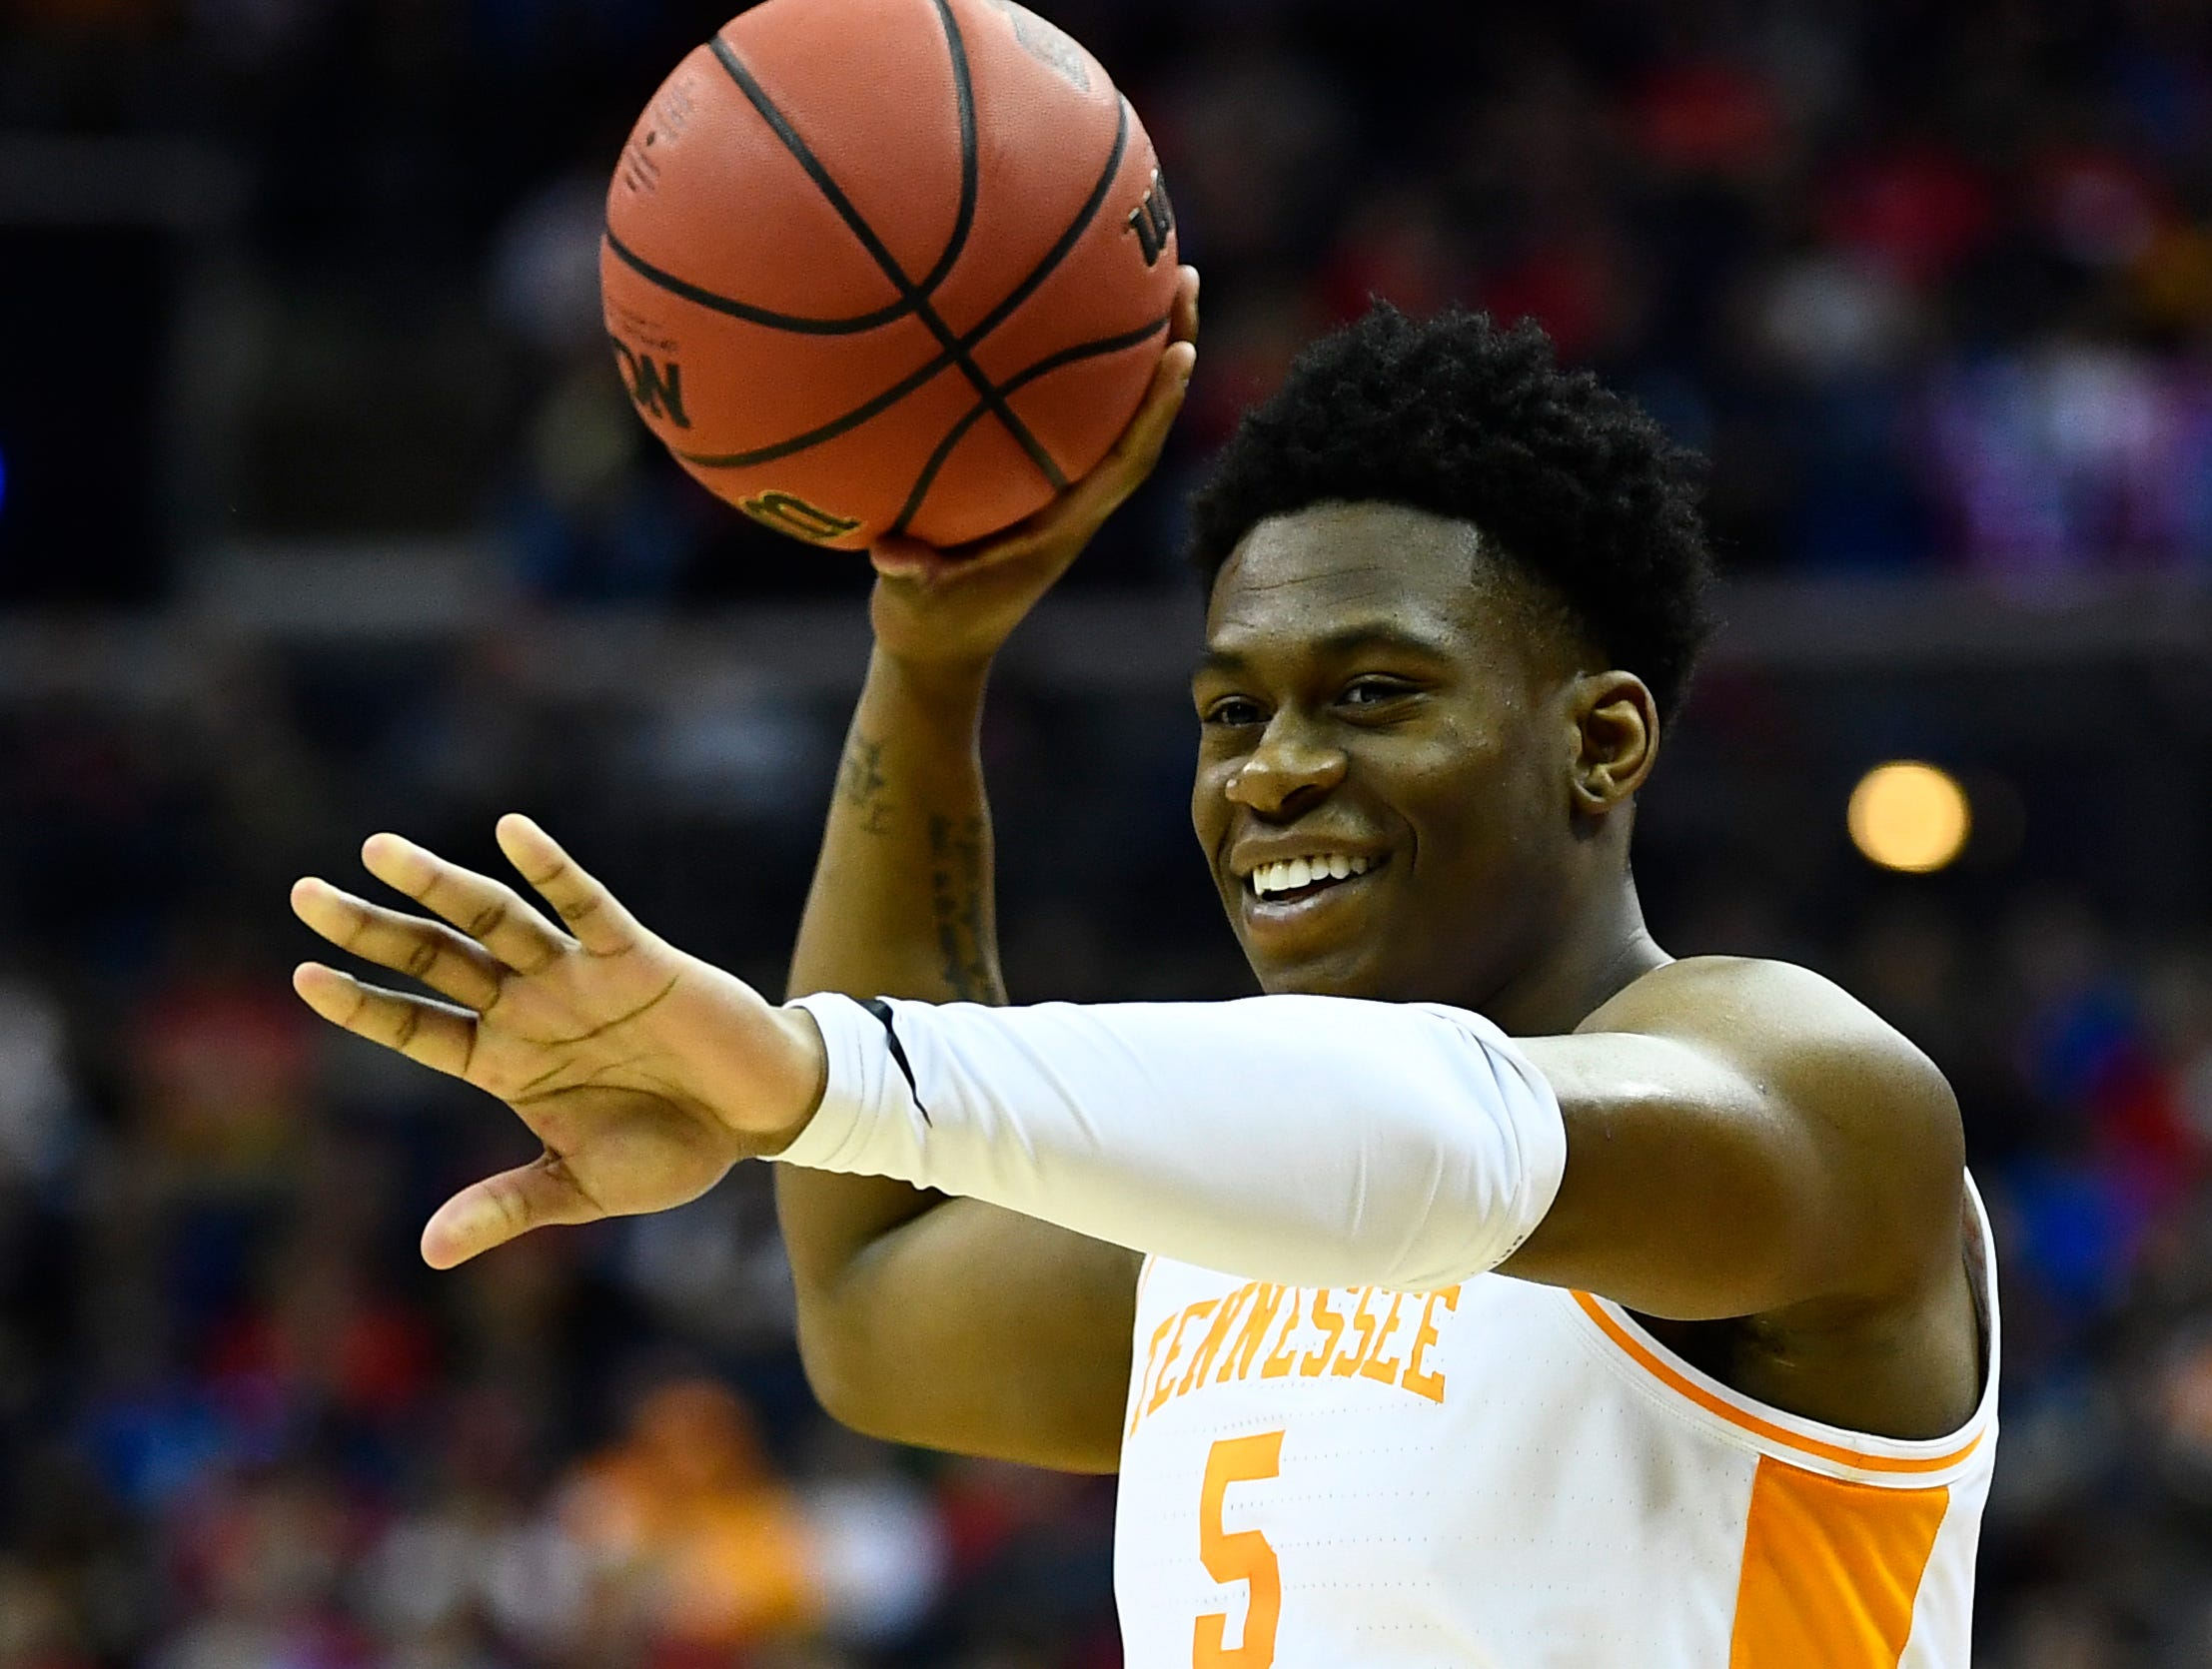 Tennessee guard Admiral Schofield (5) reaches to high-five a teammate during the game against the Colgate Raiders in the first round of the NCAA Tournament at Nationwide Arena in Columbus, Ohio, on Friday, March 22, 2019.